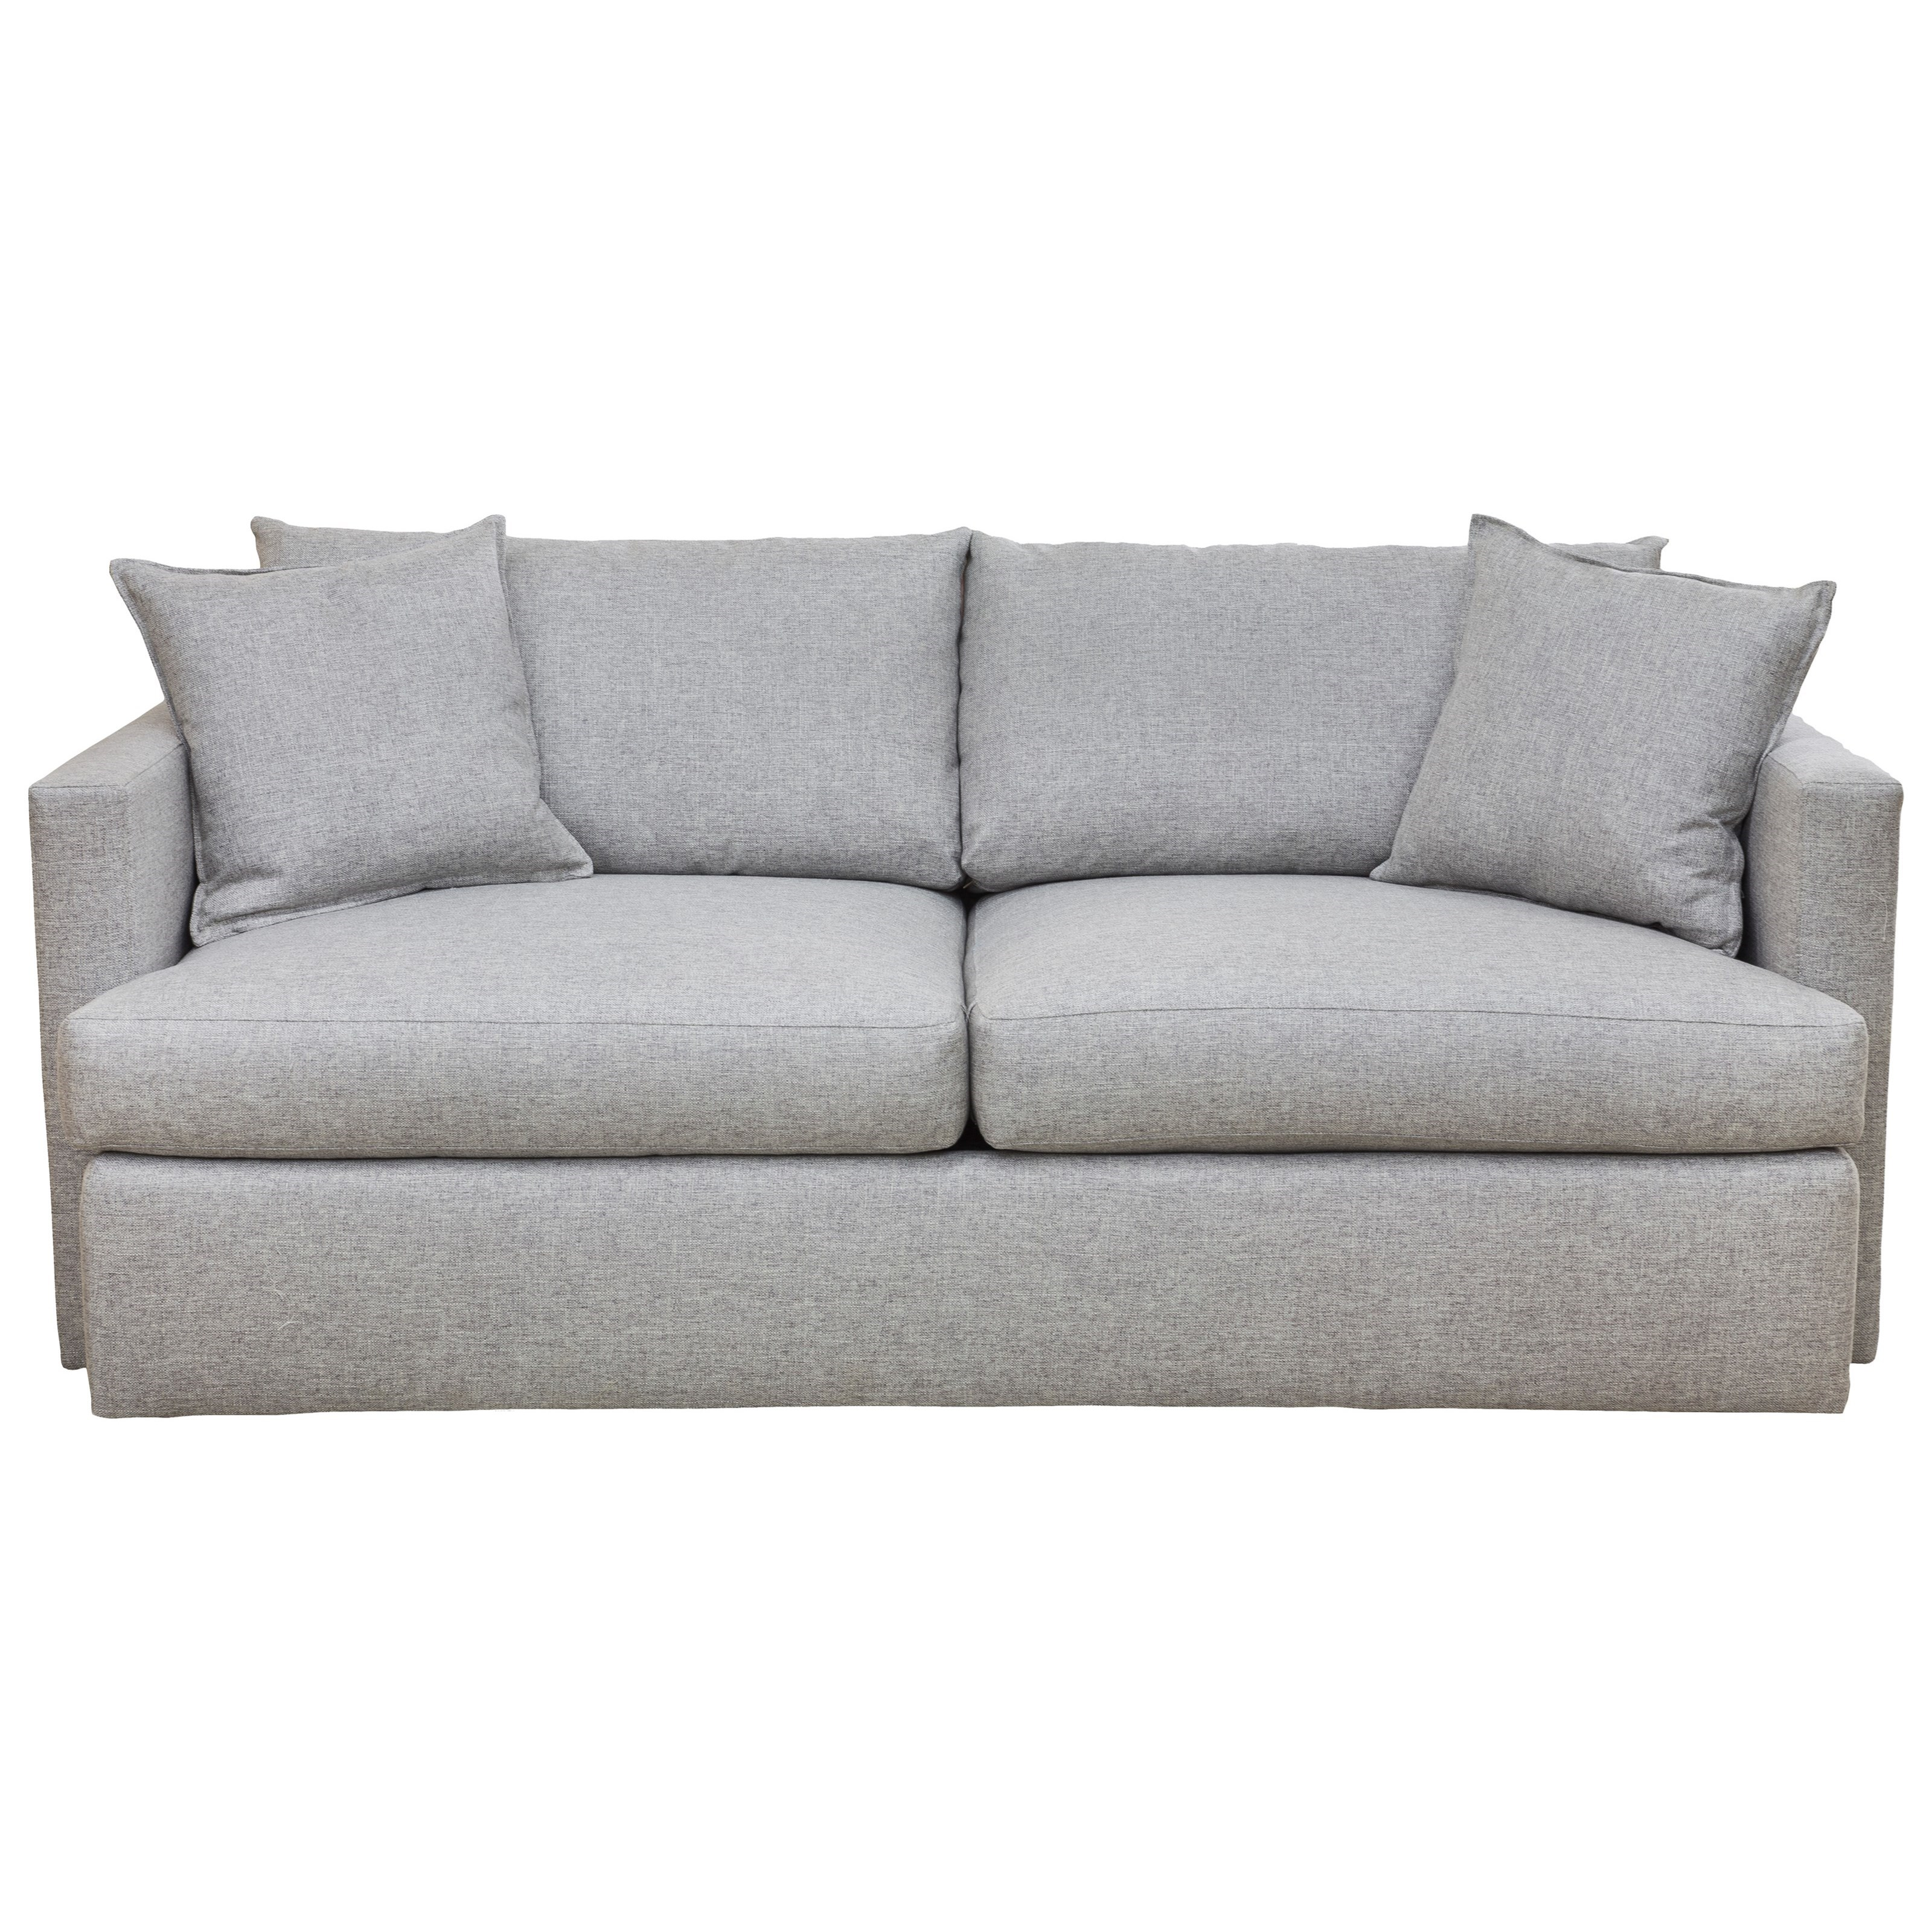 American Bungalow Two Seat Sofa by Vanguard Furniture at Baer's Furniture